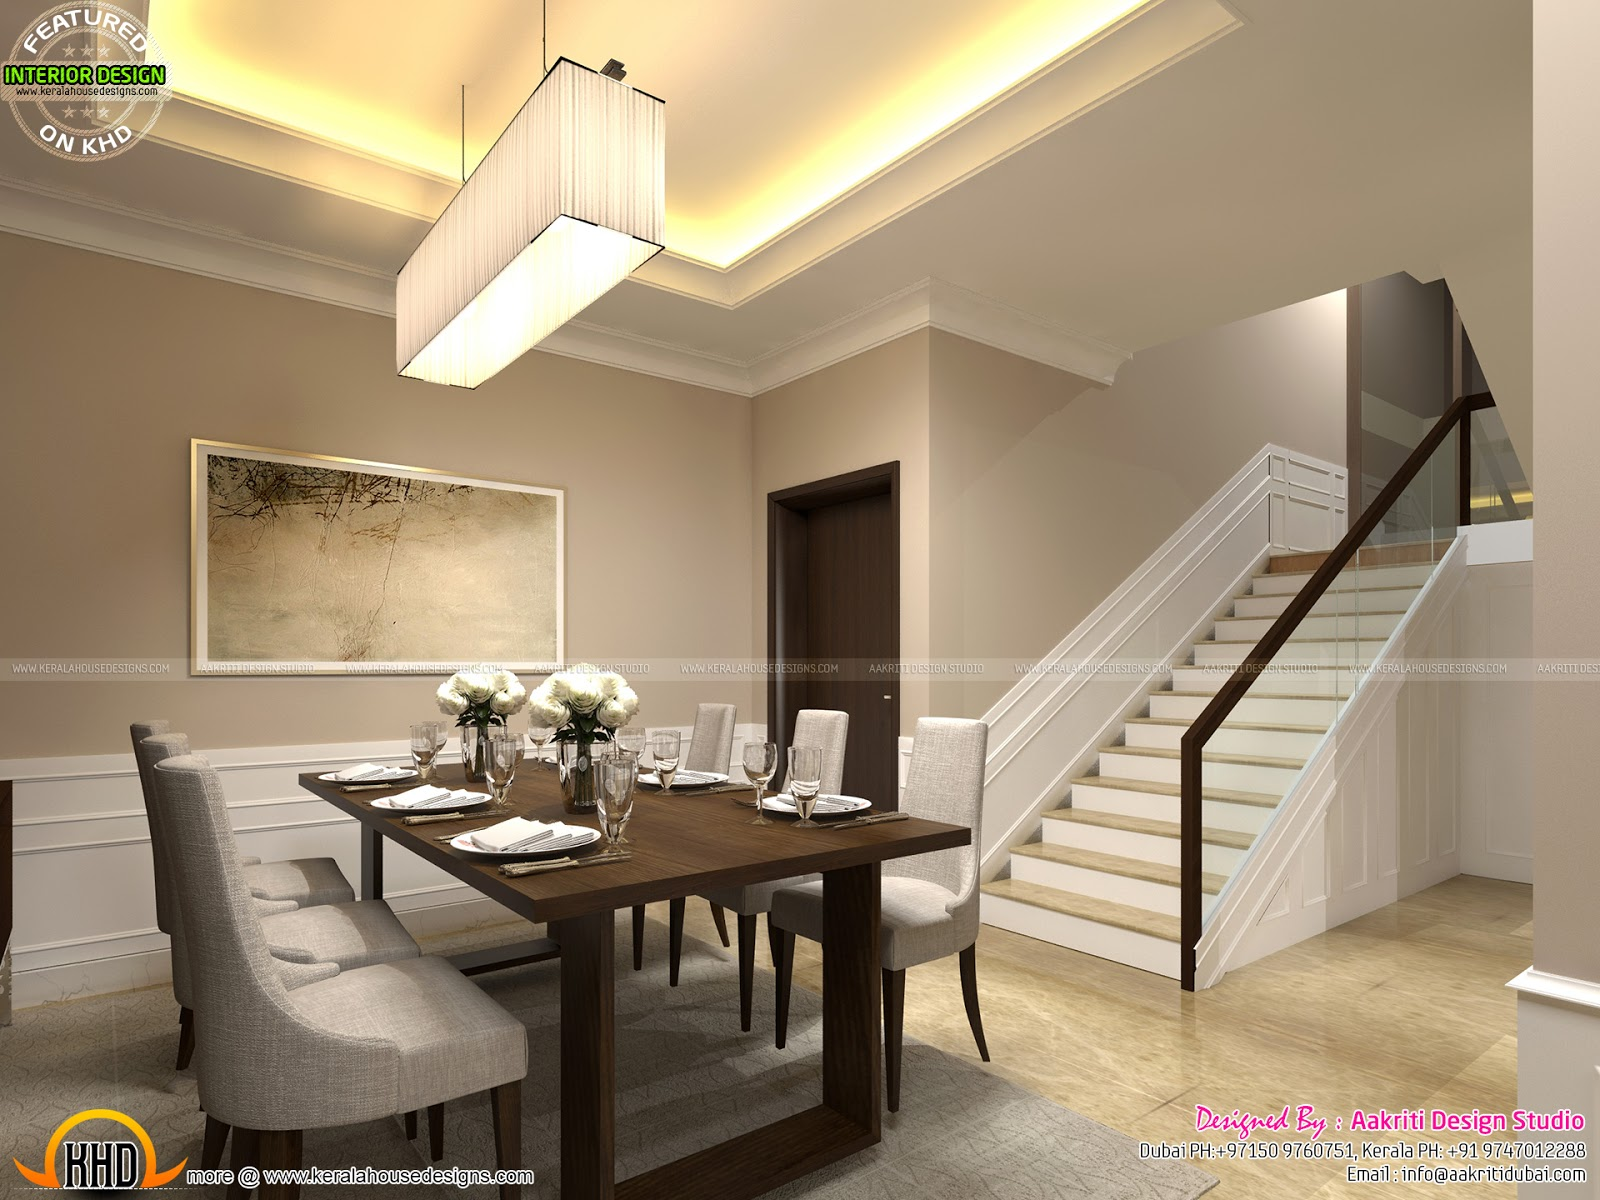 Classic style interior design for living room stair area for Interior design of living room with dining